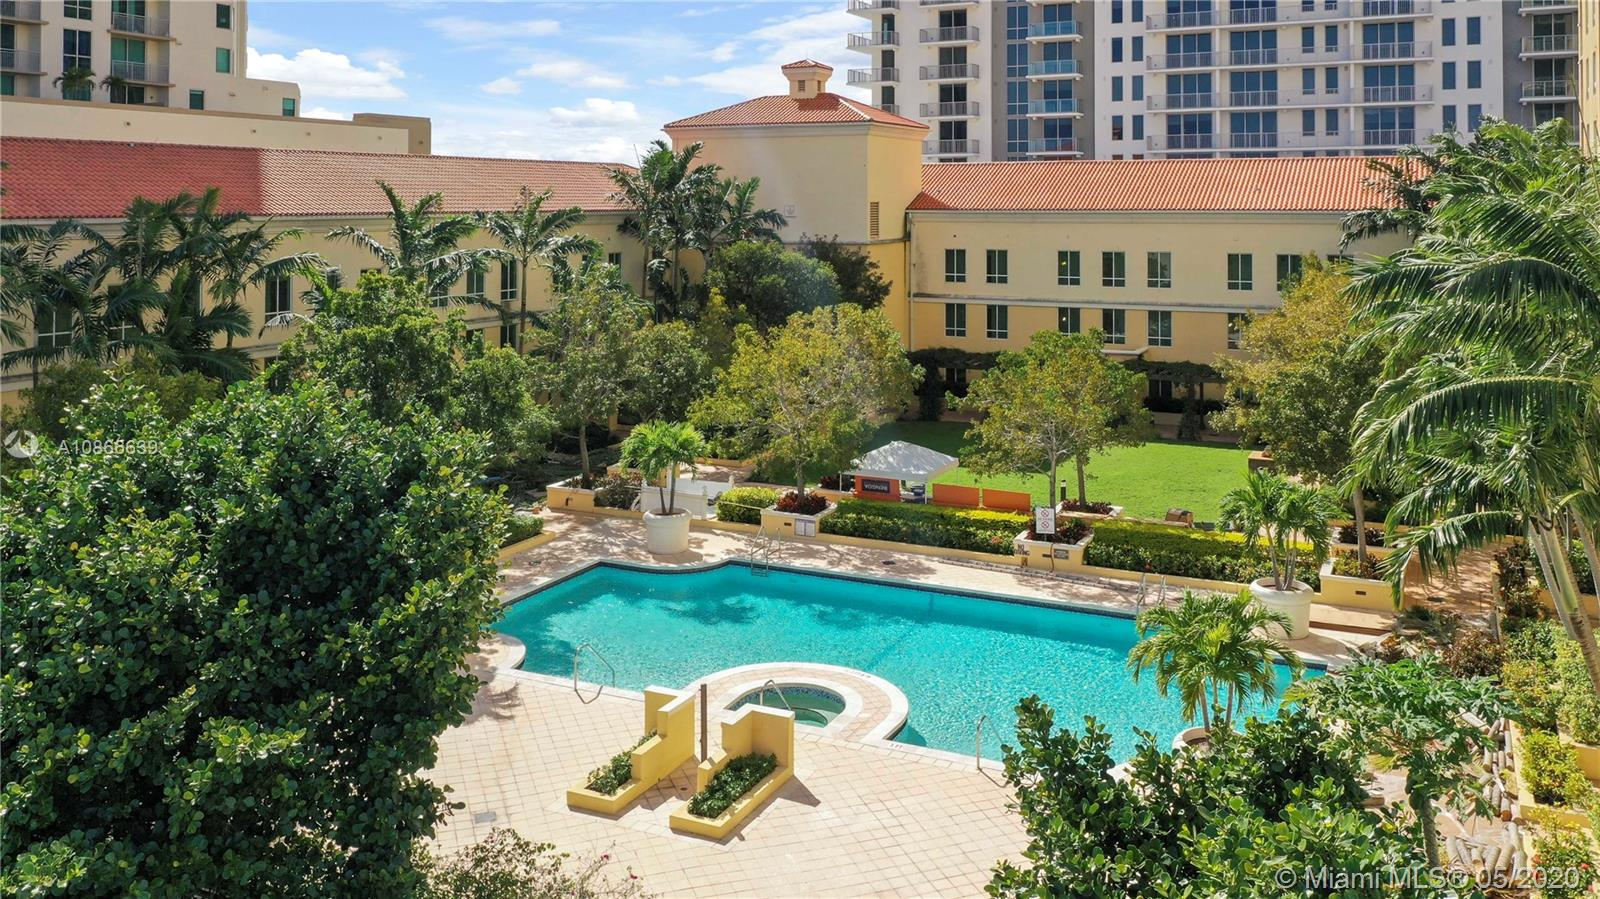 7371 SW 90th St #TH106S For Sale A10866639, FL